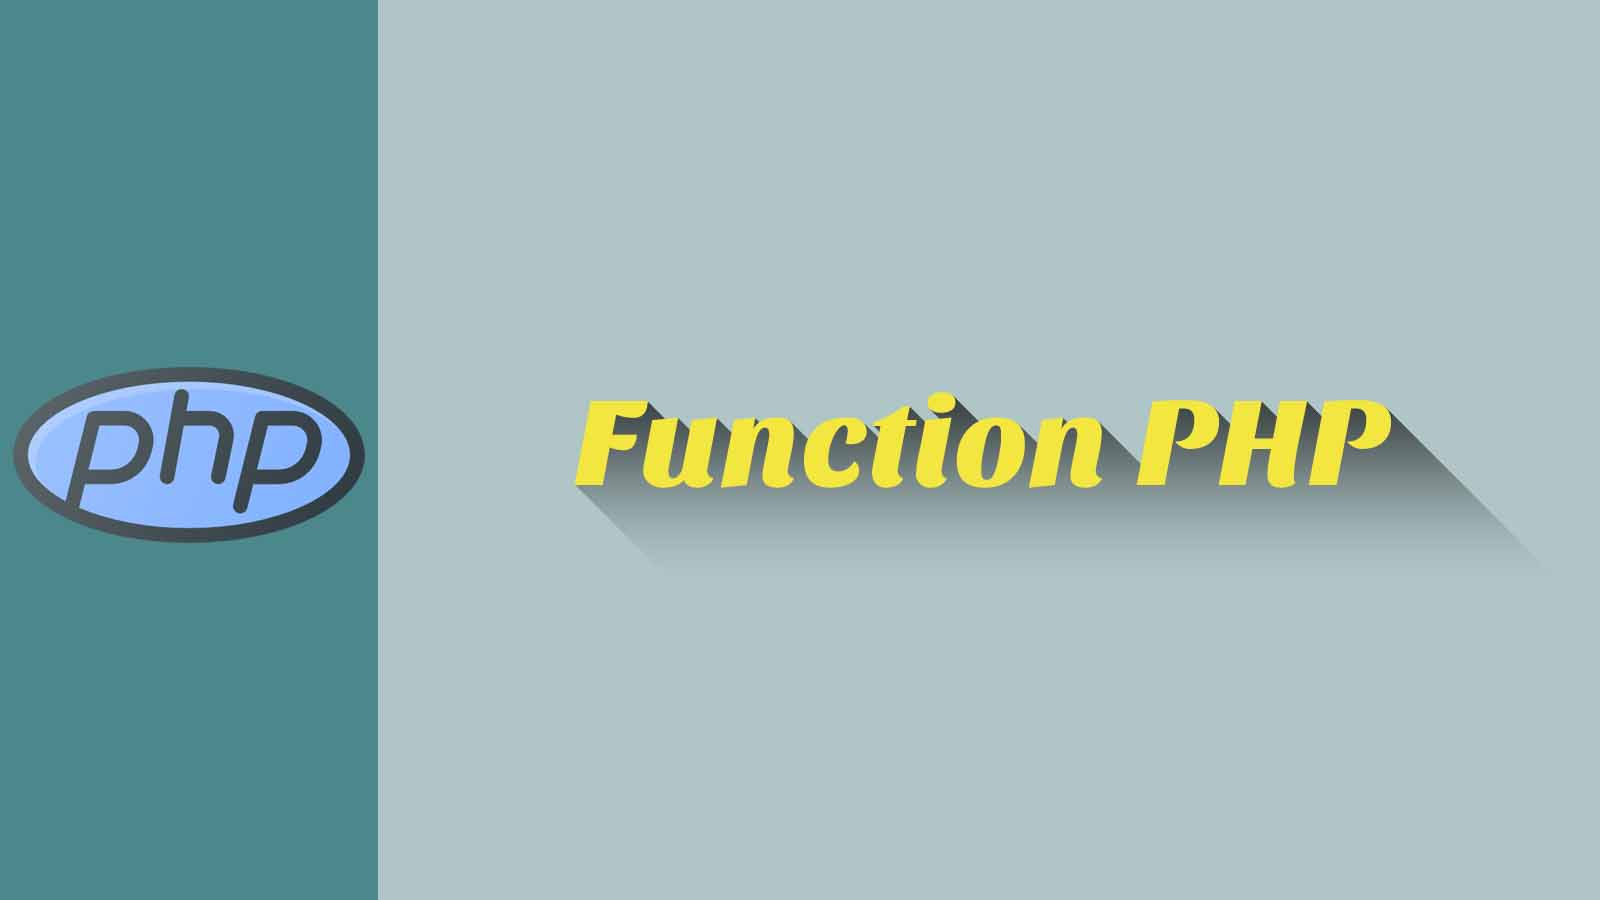 Function PHP